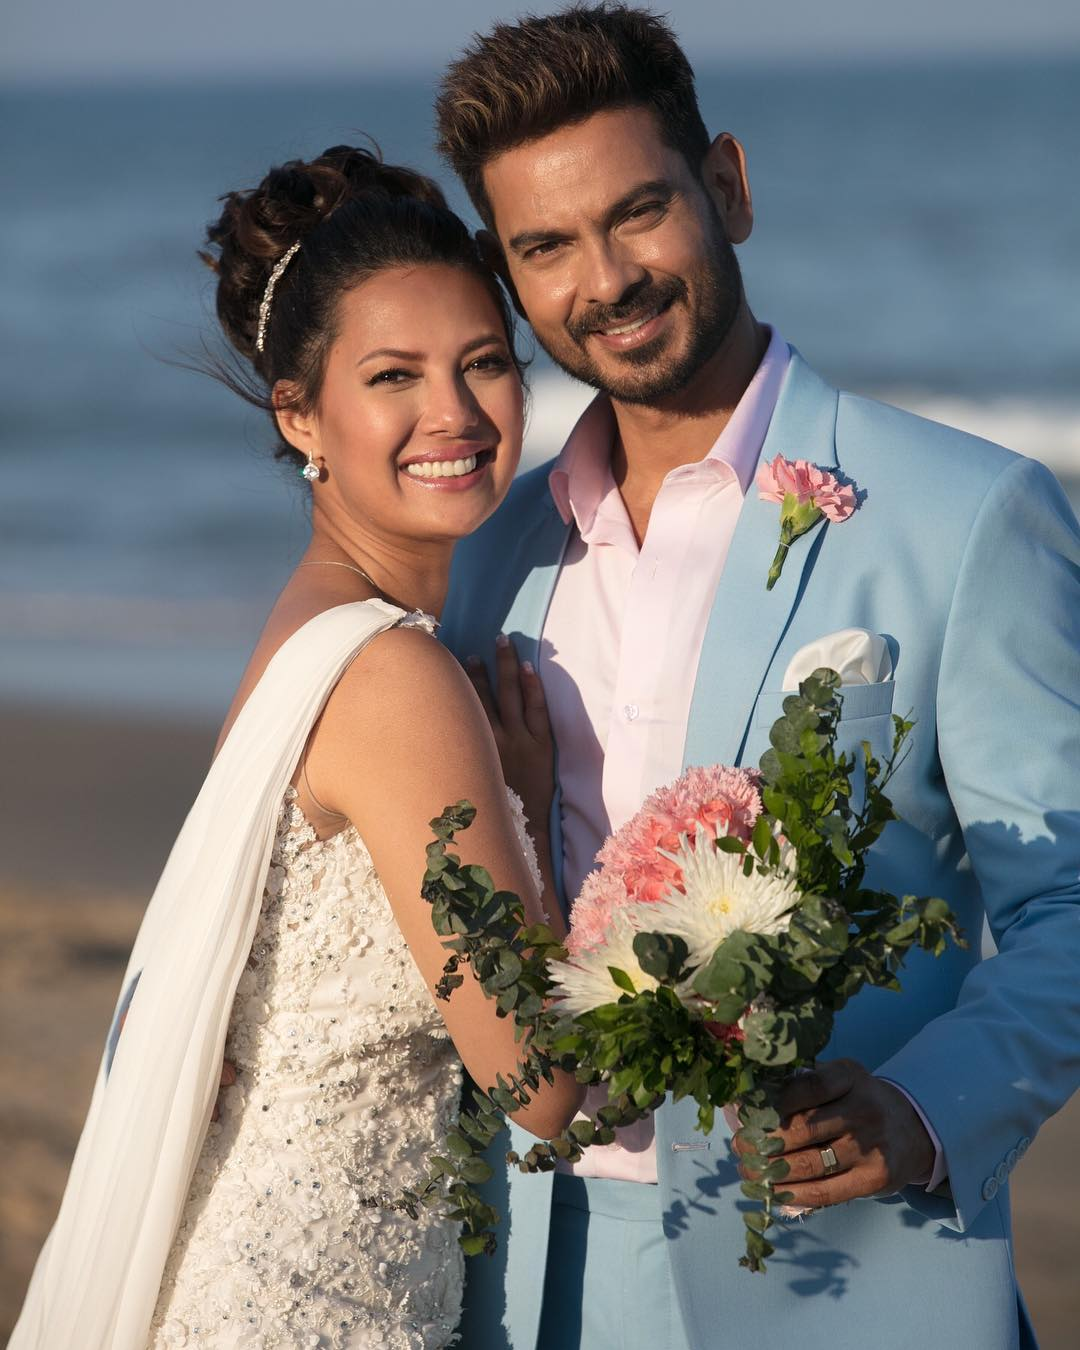 Keith Sequeira and Rochelle Rao get married in an intimate ceremony